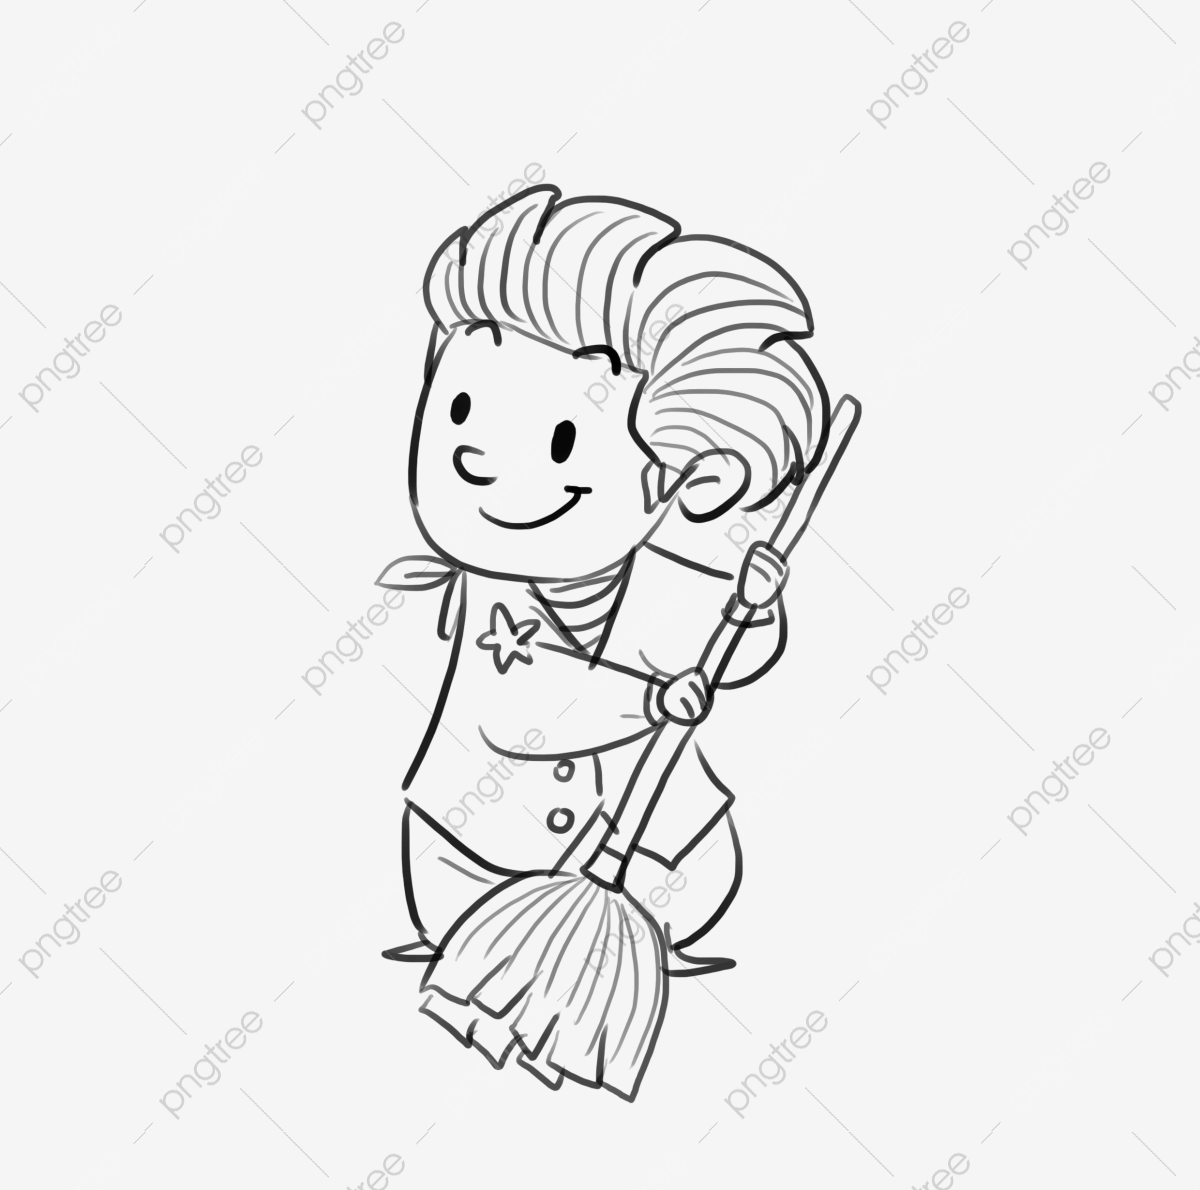 childrens day short sketch hand painted graffiti little boy sweep the floor png transparent clipart image and psd file for free download https pngtree com freepng childrens day short sketch hand painted 3824020 html